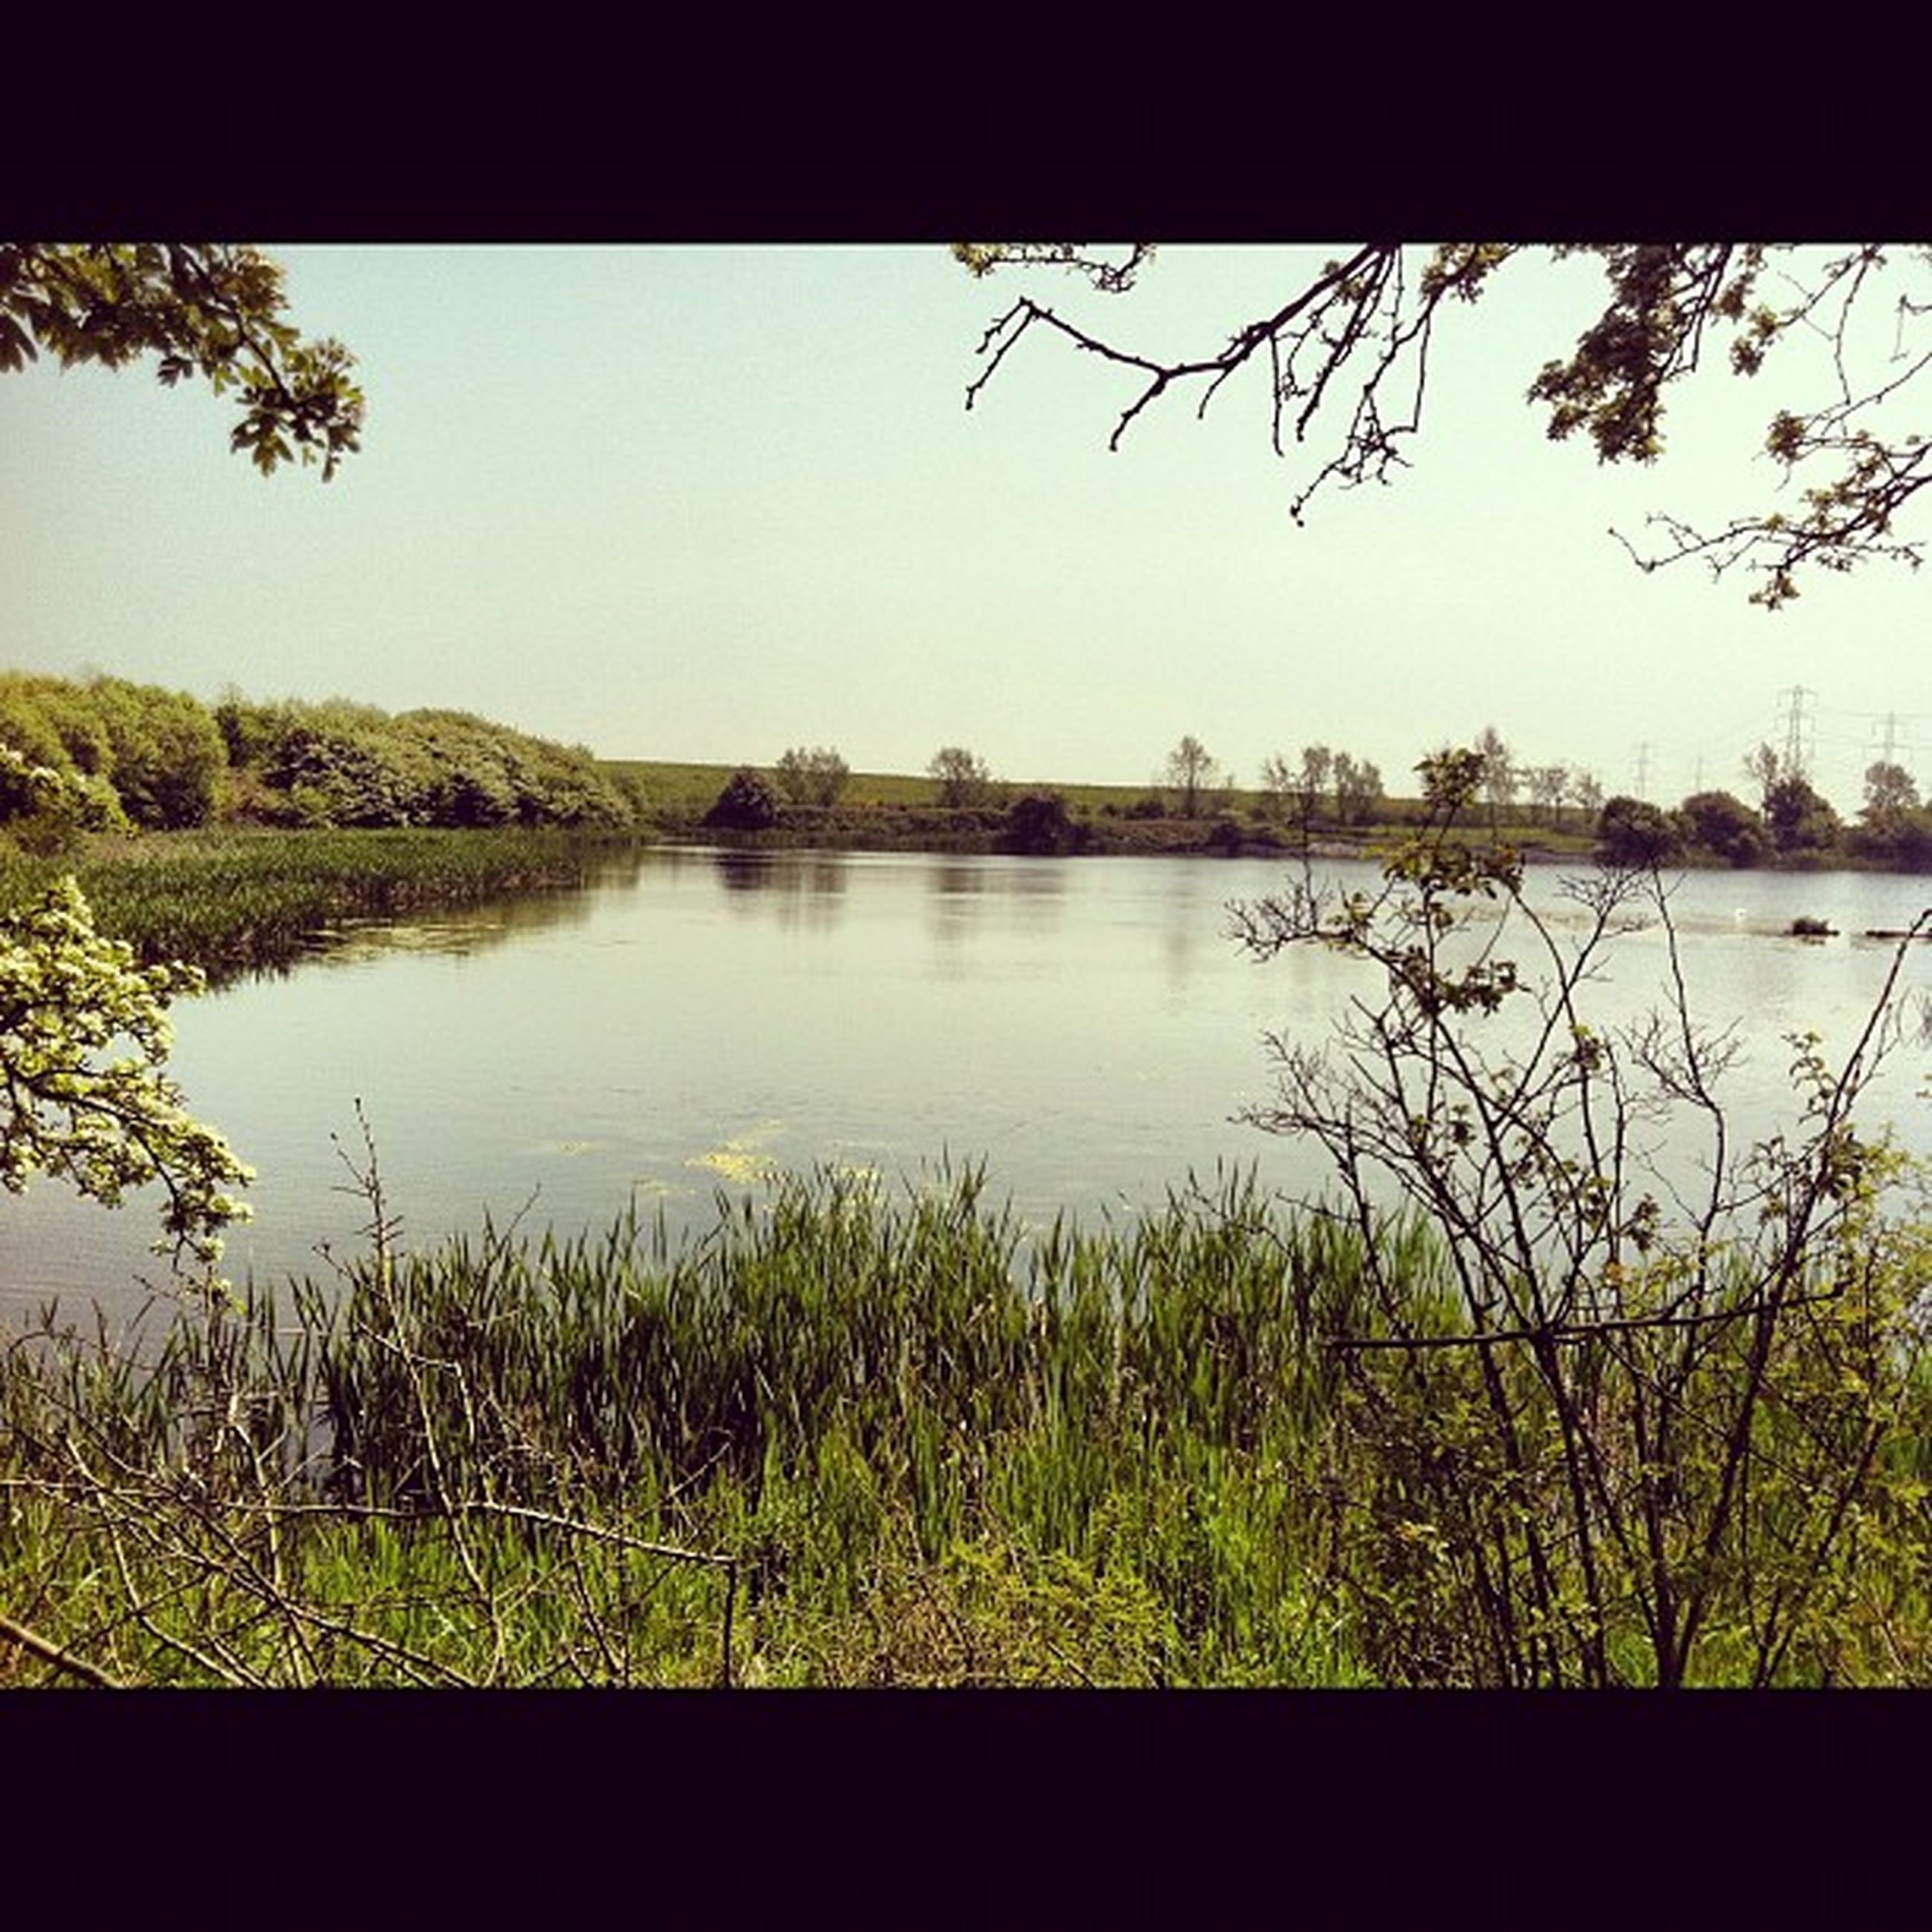 water, clear sky, lake, tree, tranquility, tranquil scene, grass, growth, reflection, plant, nature, scenics, river, beauty in nature, copy space, lakeshore, day, transfer print, sky, calm